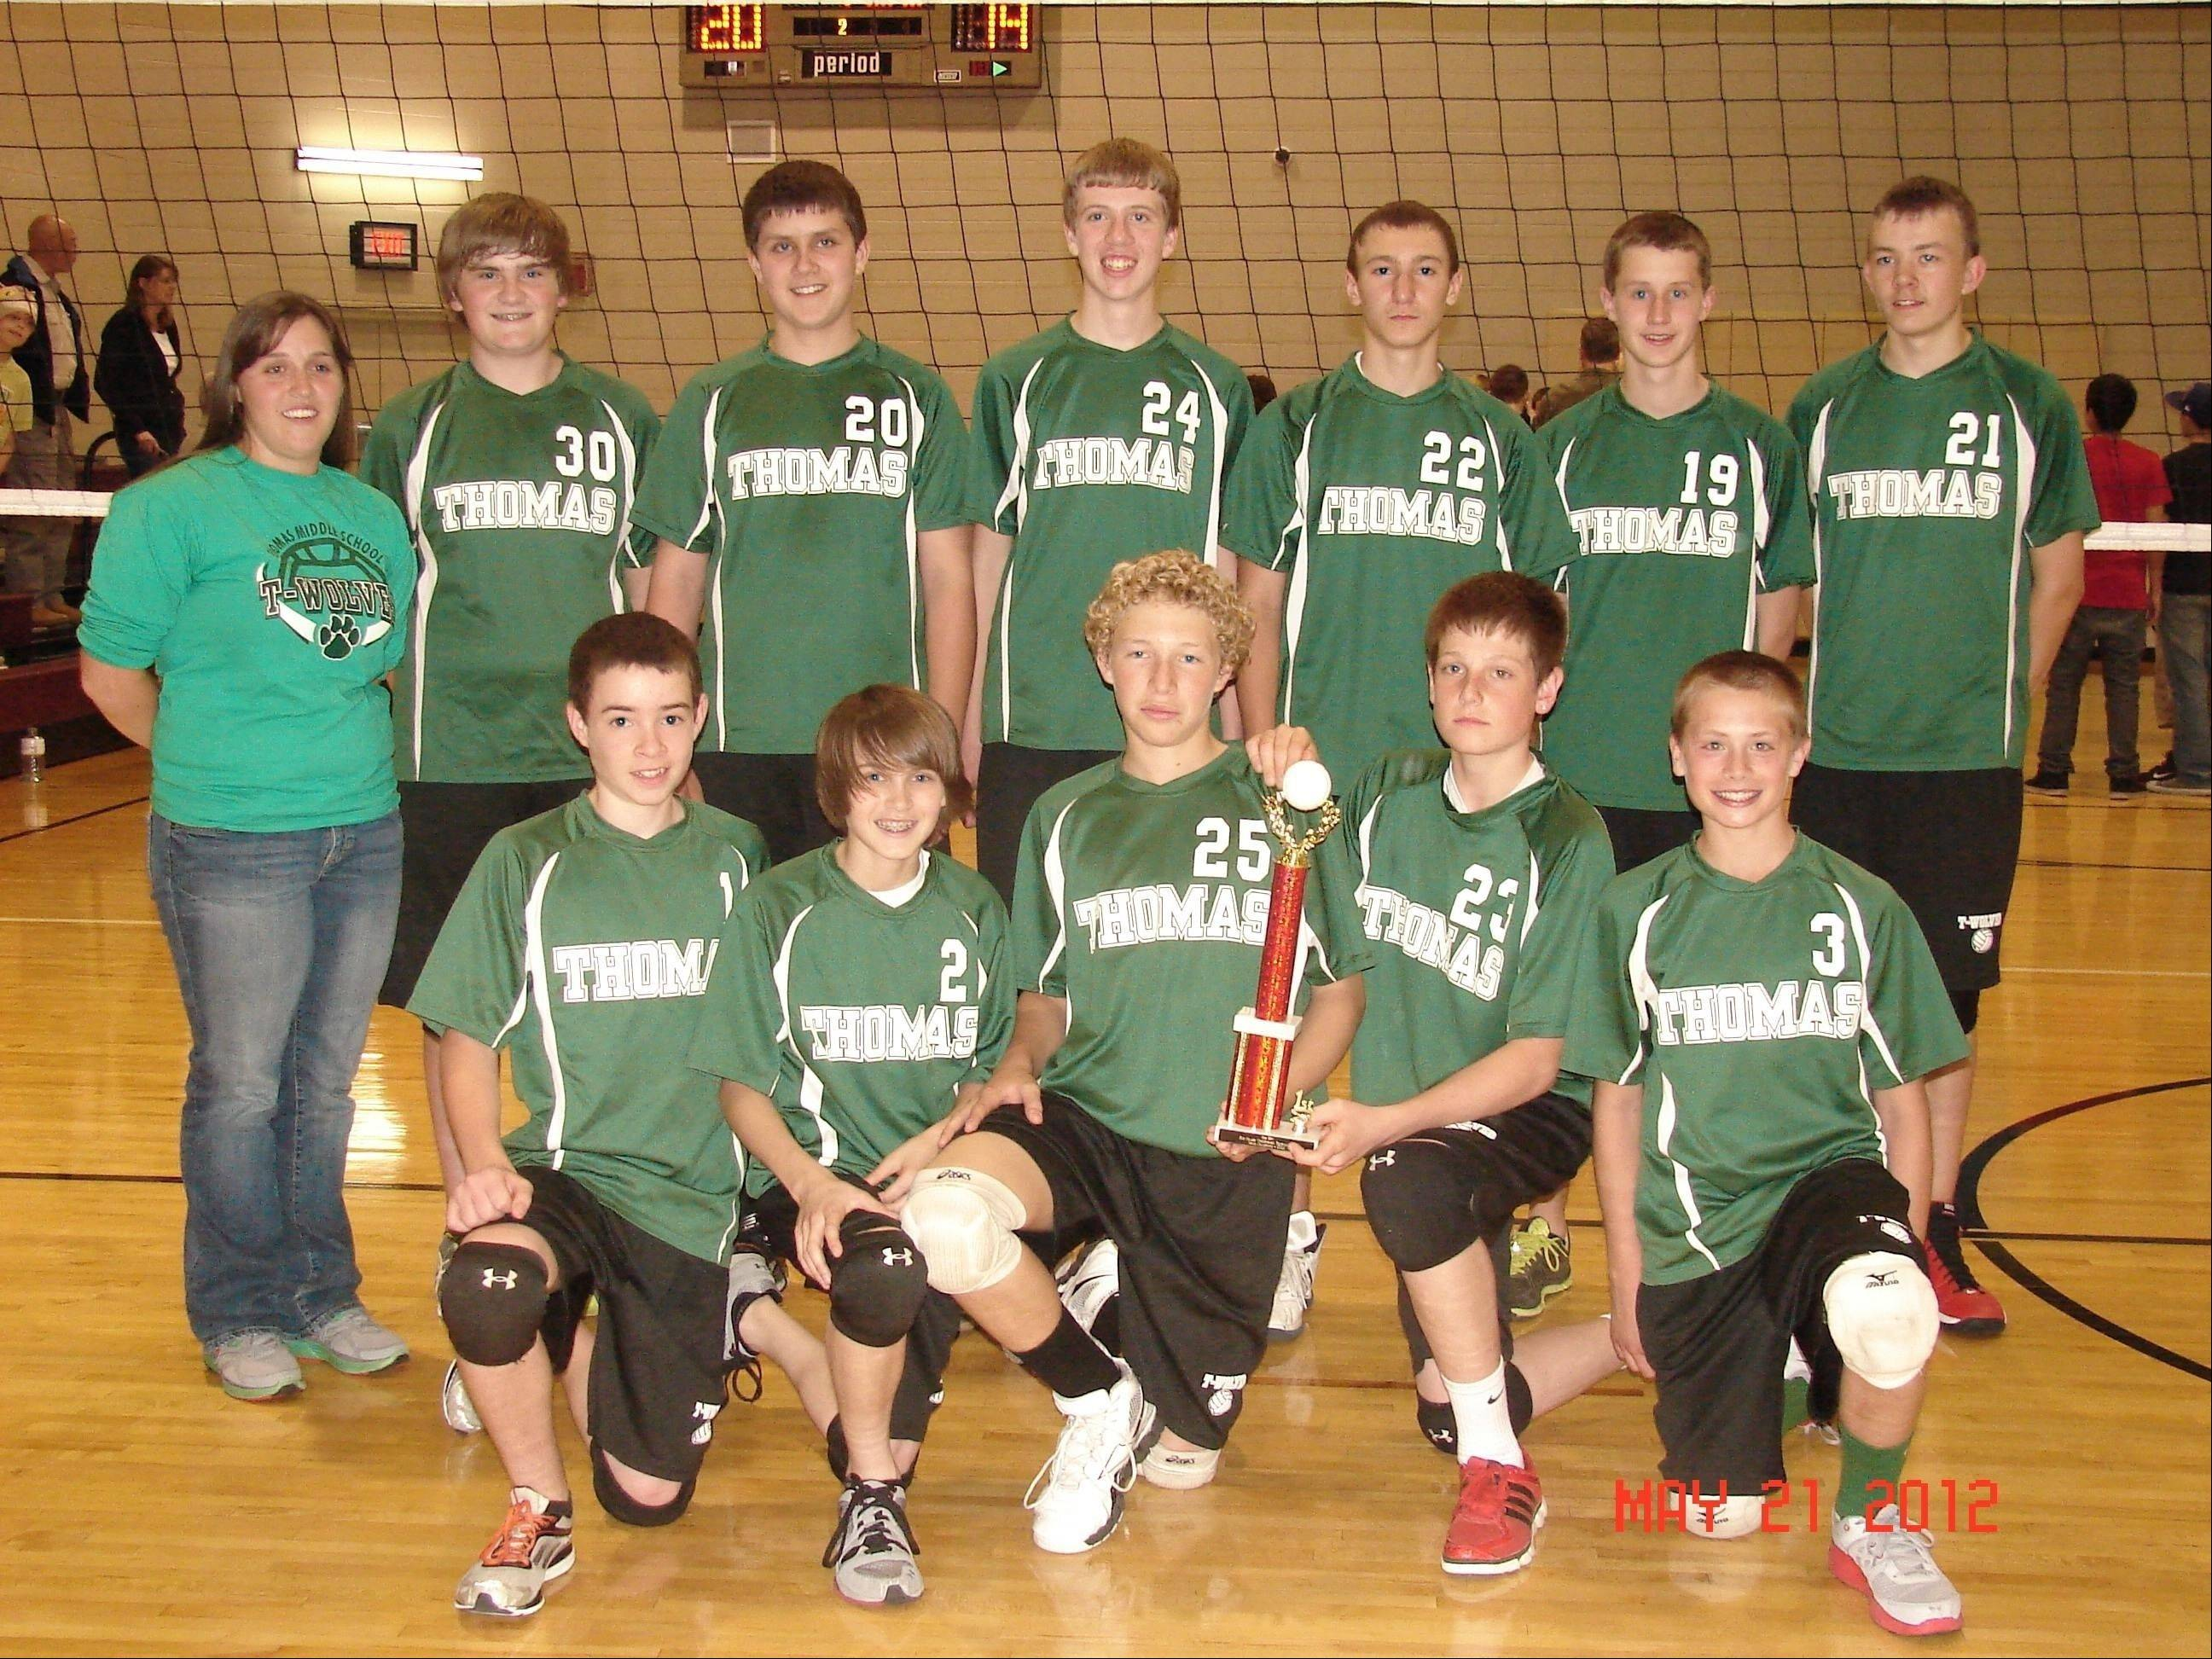 The Thomas Middle School boys volleyball team went undefeated for two consecutive years. Pictured, from left, are, first row: Kevin Cooke, Adam Schill, Brett Harris, Nolan Fortman and Matt Johnson; second row: Coach Kate Renno, Brian Lynch, Angelo Coniglio, Ryan Bayerle, Joey Pinakidis, Nick Winter and Connor Burhop.